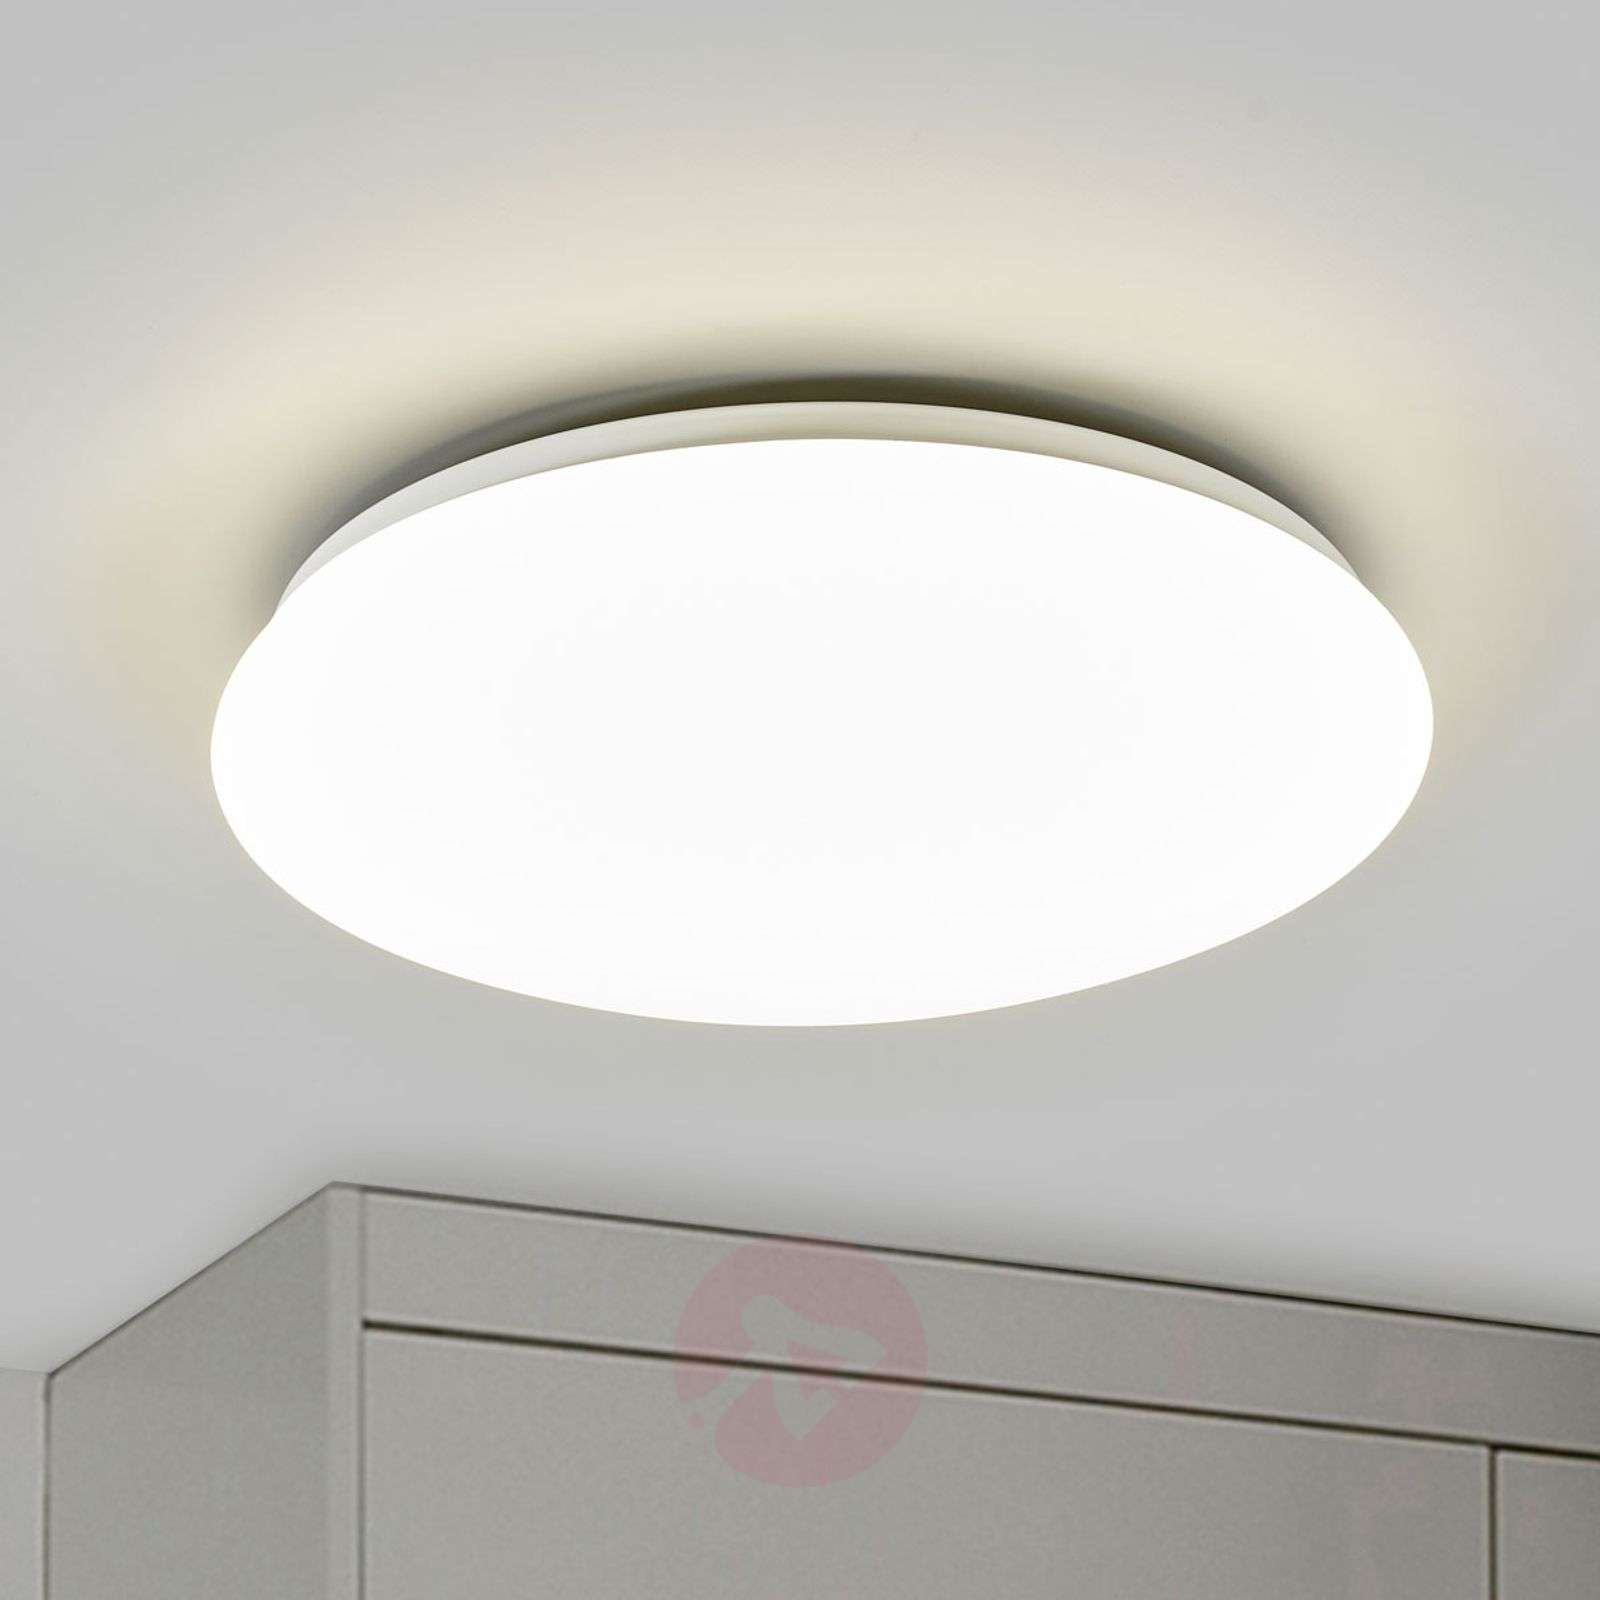 Suede LED Ceiling Light White-7531490-01